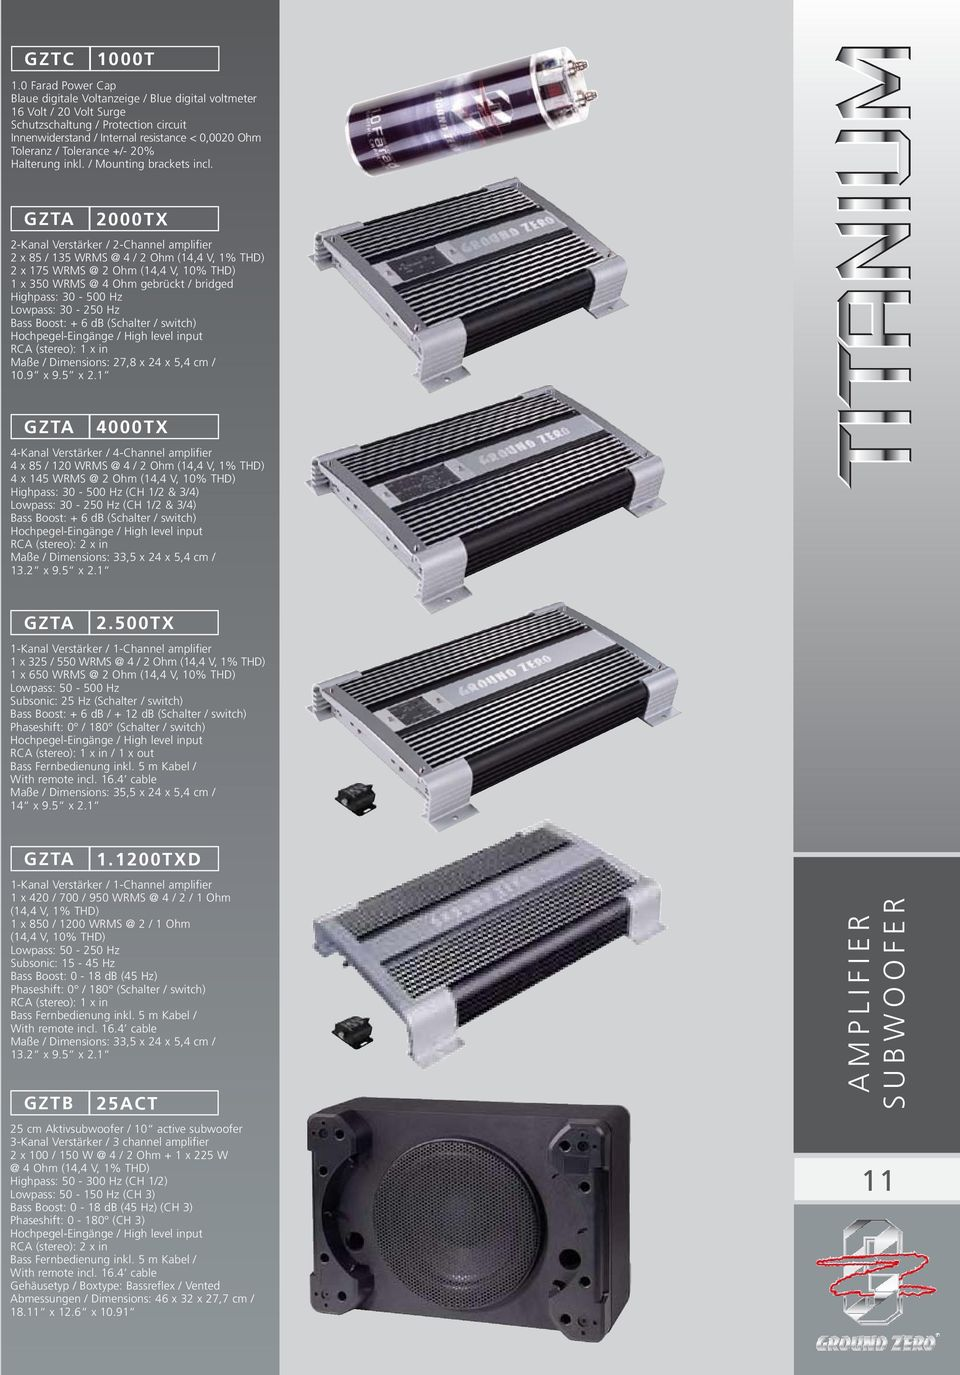 Tolerance +/- 20% Halterung inkl. / Mounting brackets incl.